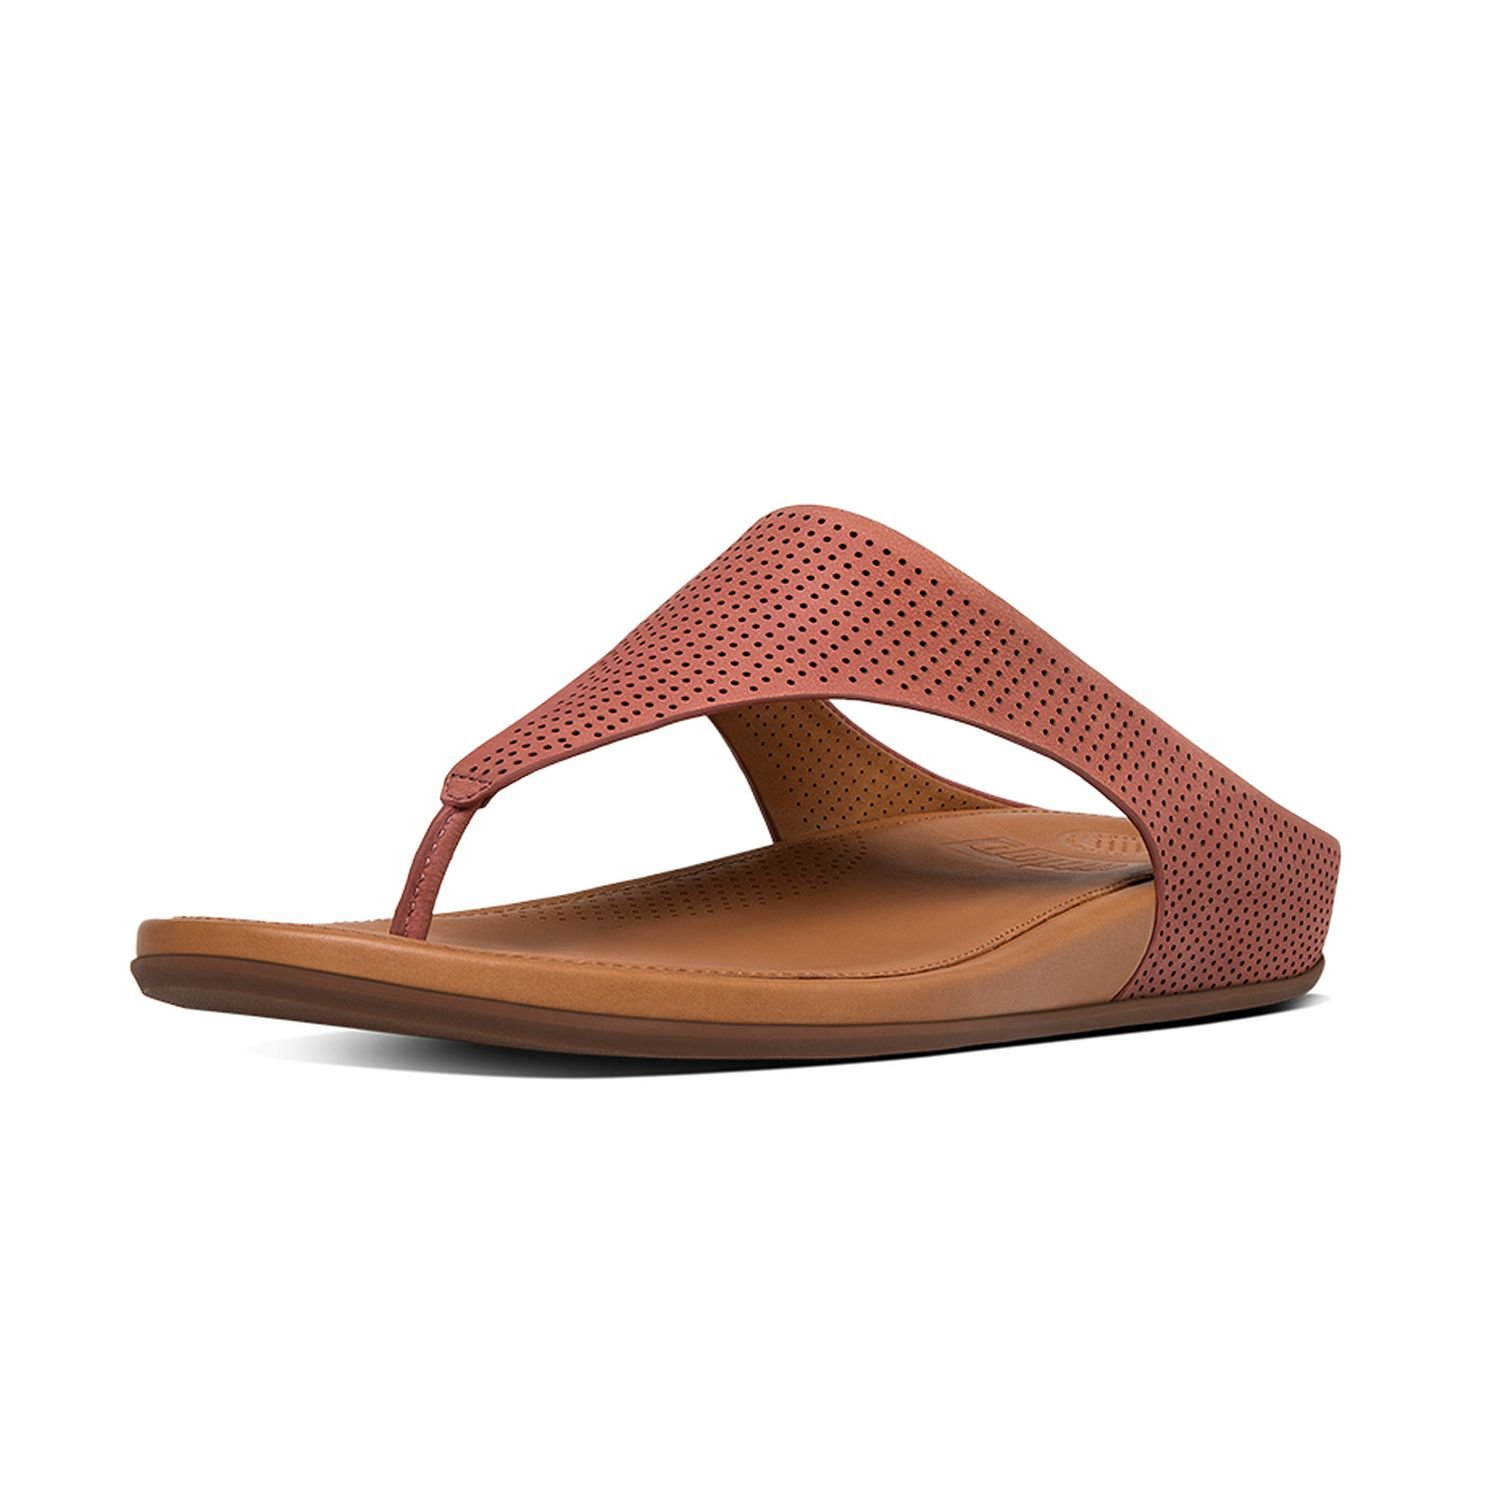 FitFlop Womens Banda Perf Leather Toe-Thong Rosy Sand Sandal - 10 by FitFlop